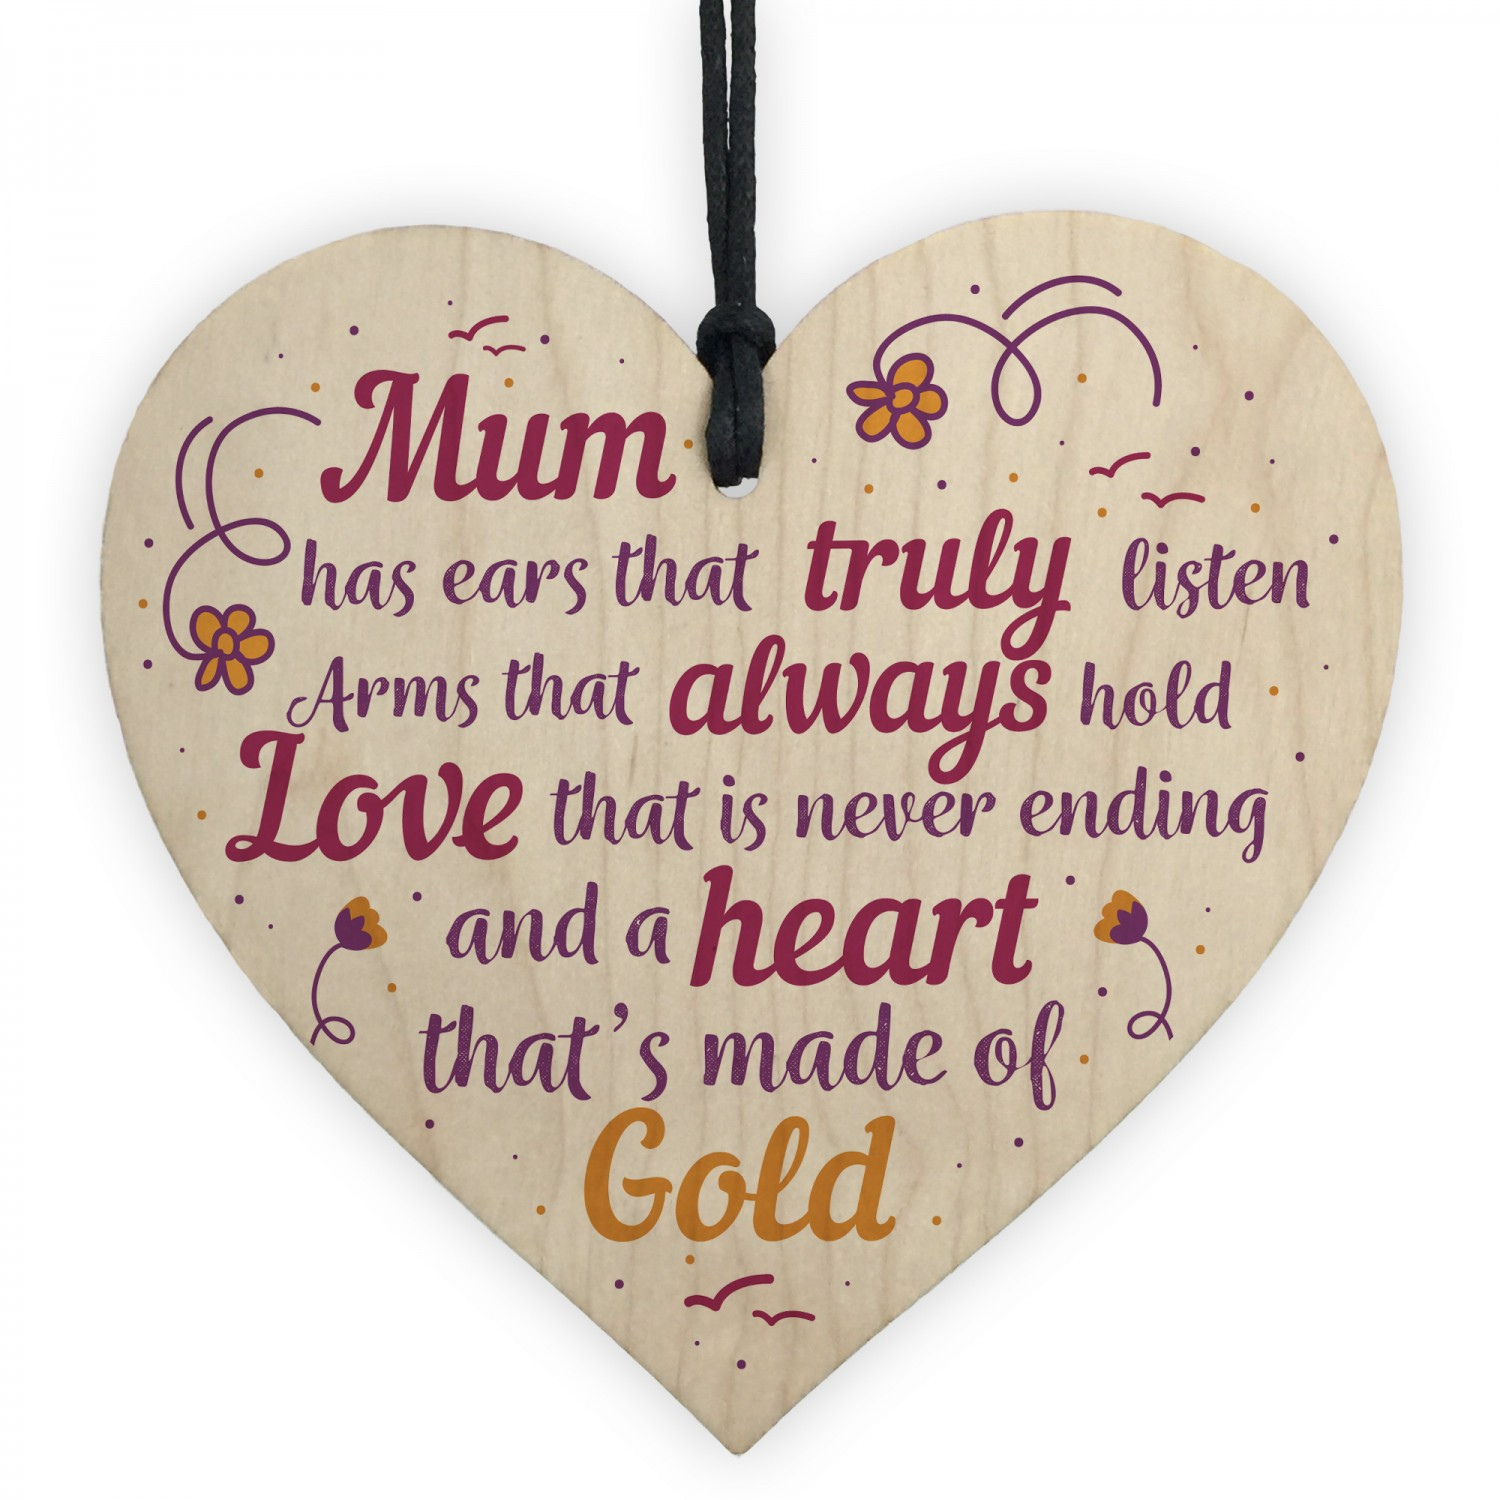 Mother Christmas Gifts.Mum Mummy Mother Christmas Gift From Daughter Son Wood Heart